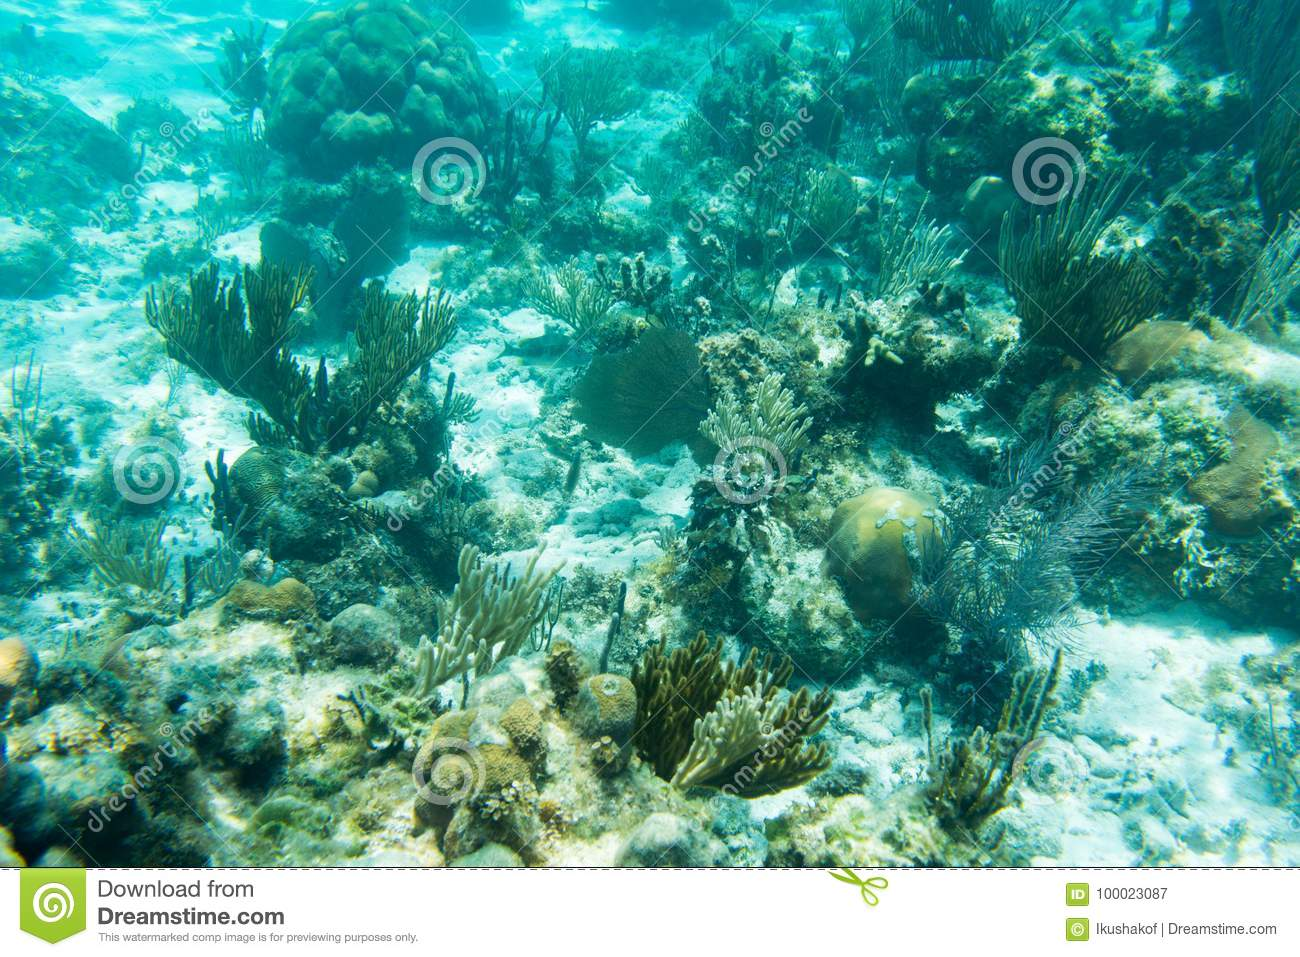 Underwater Photography Of The Caribbean Sea. Corals And Fish Stock ...